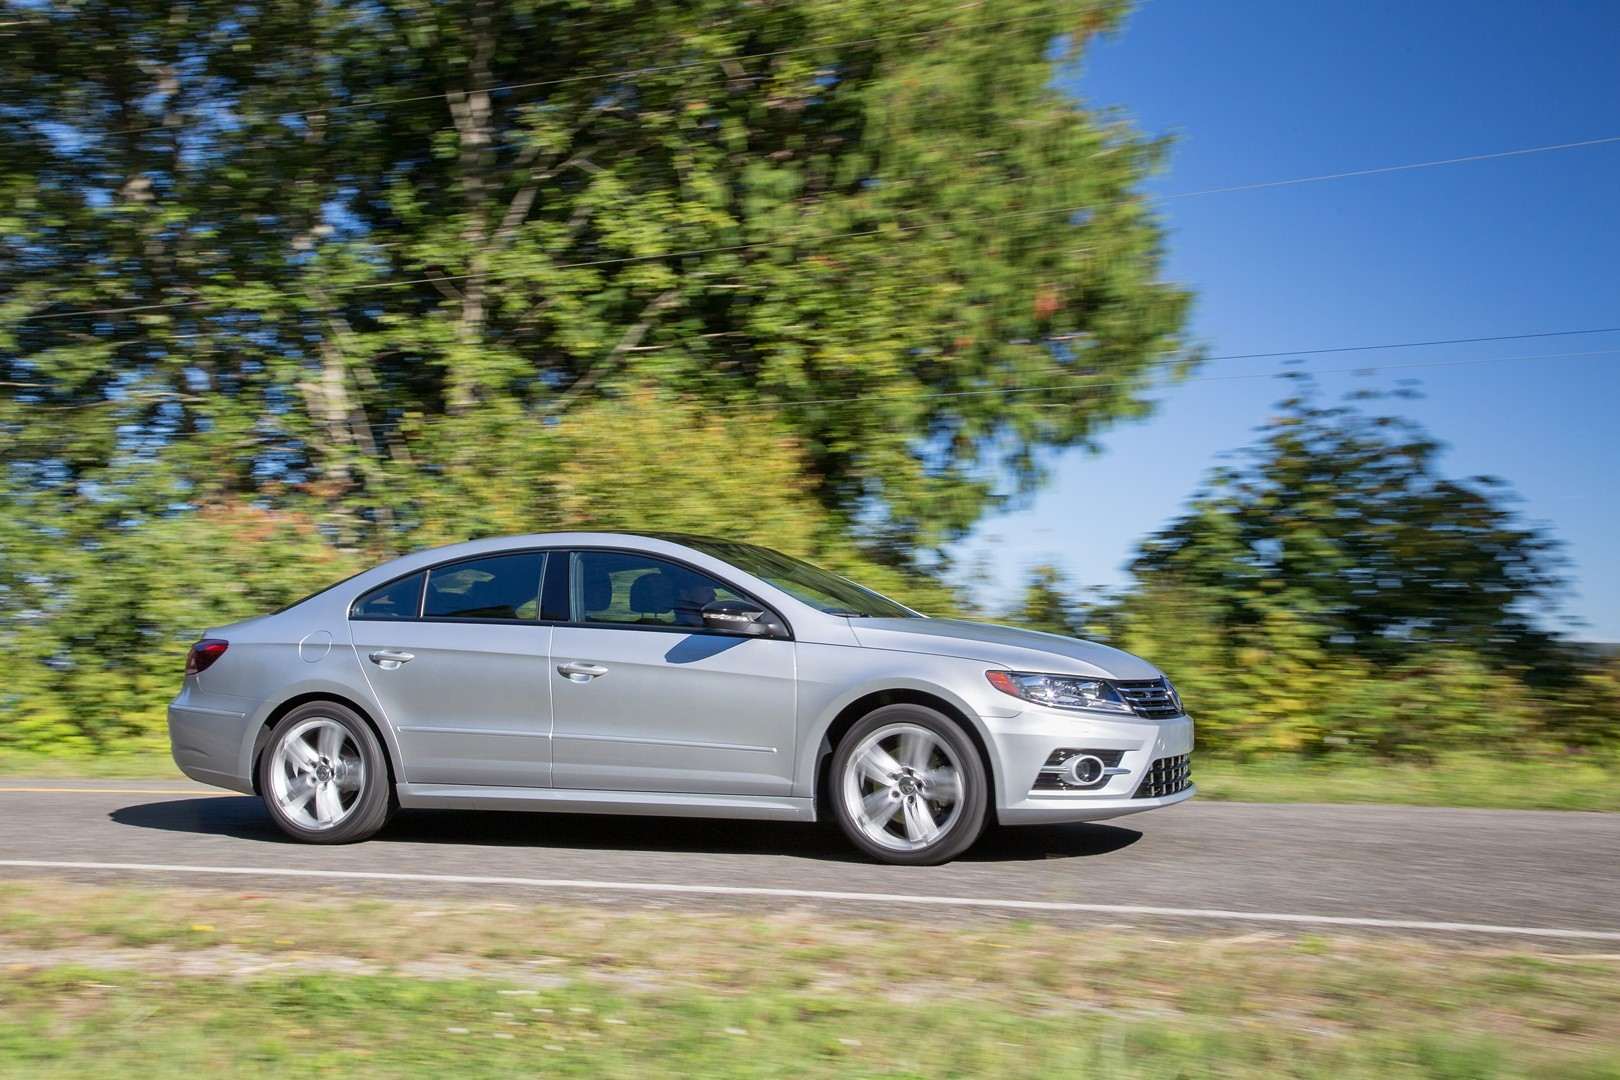 2017 Volkswagen CC Photos and Videos for the US, Gone From German Configurator - autoevolution